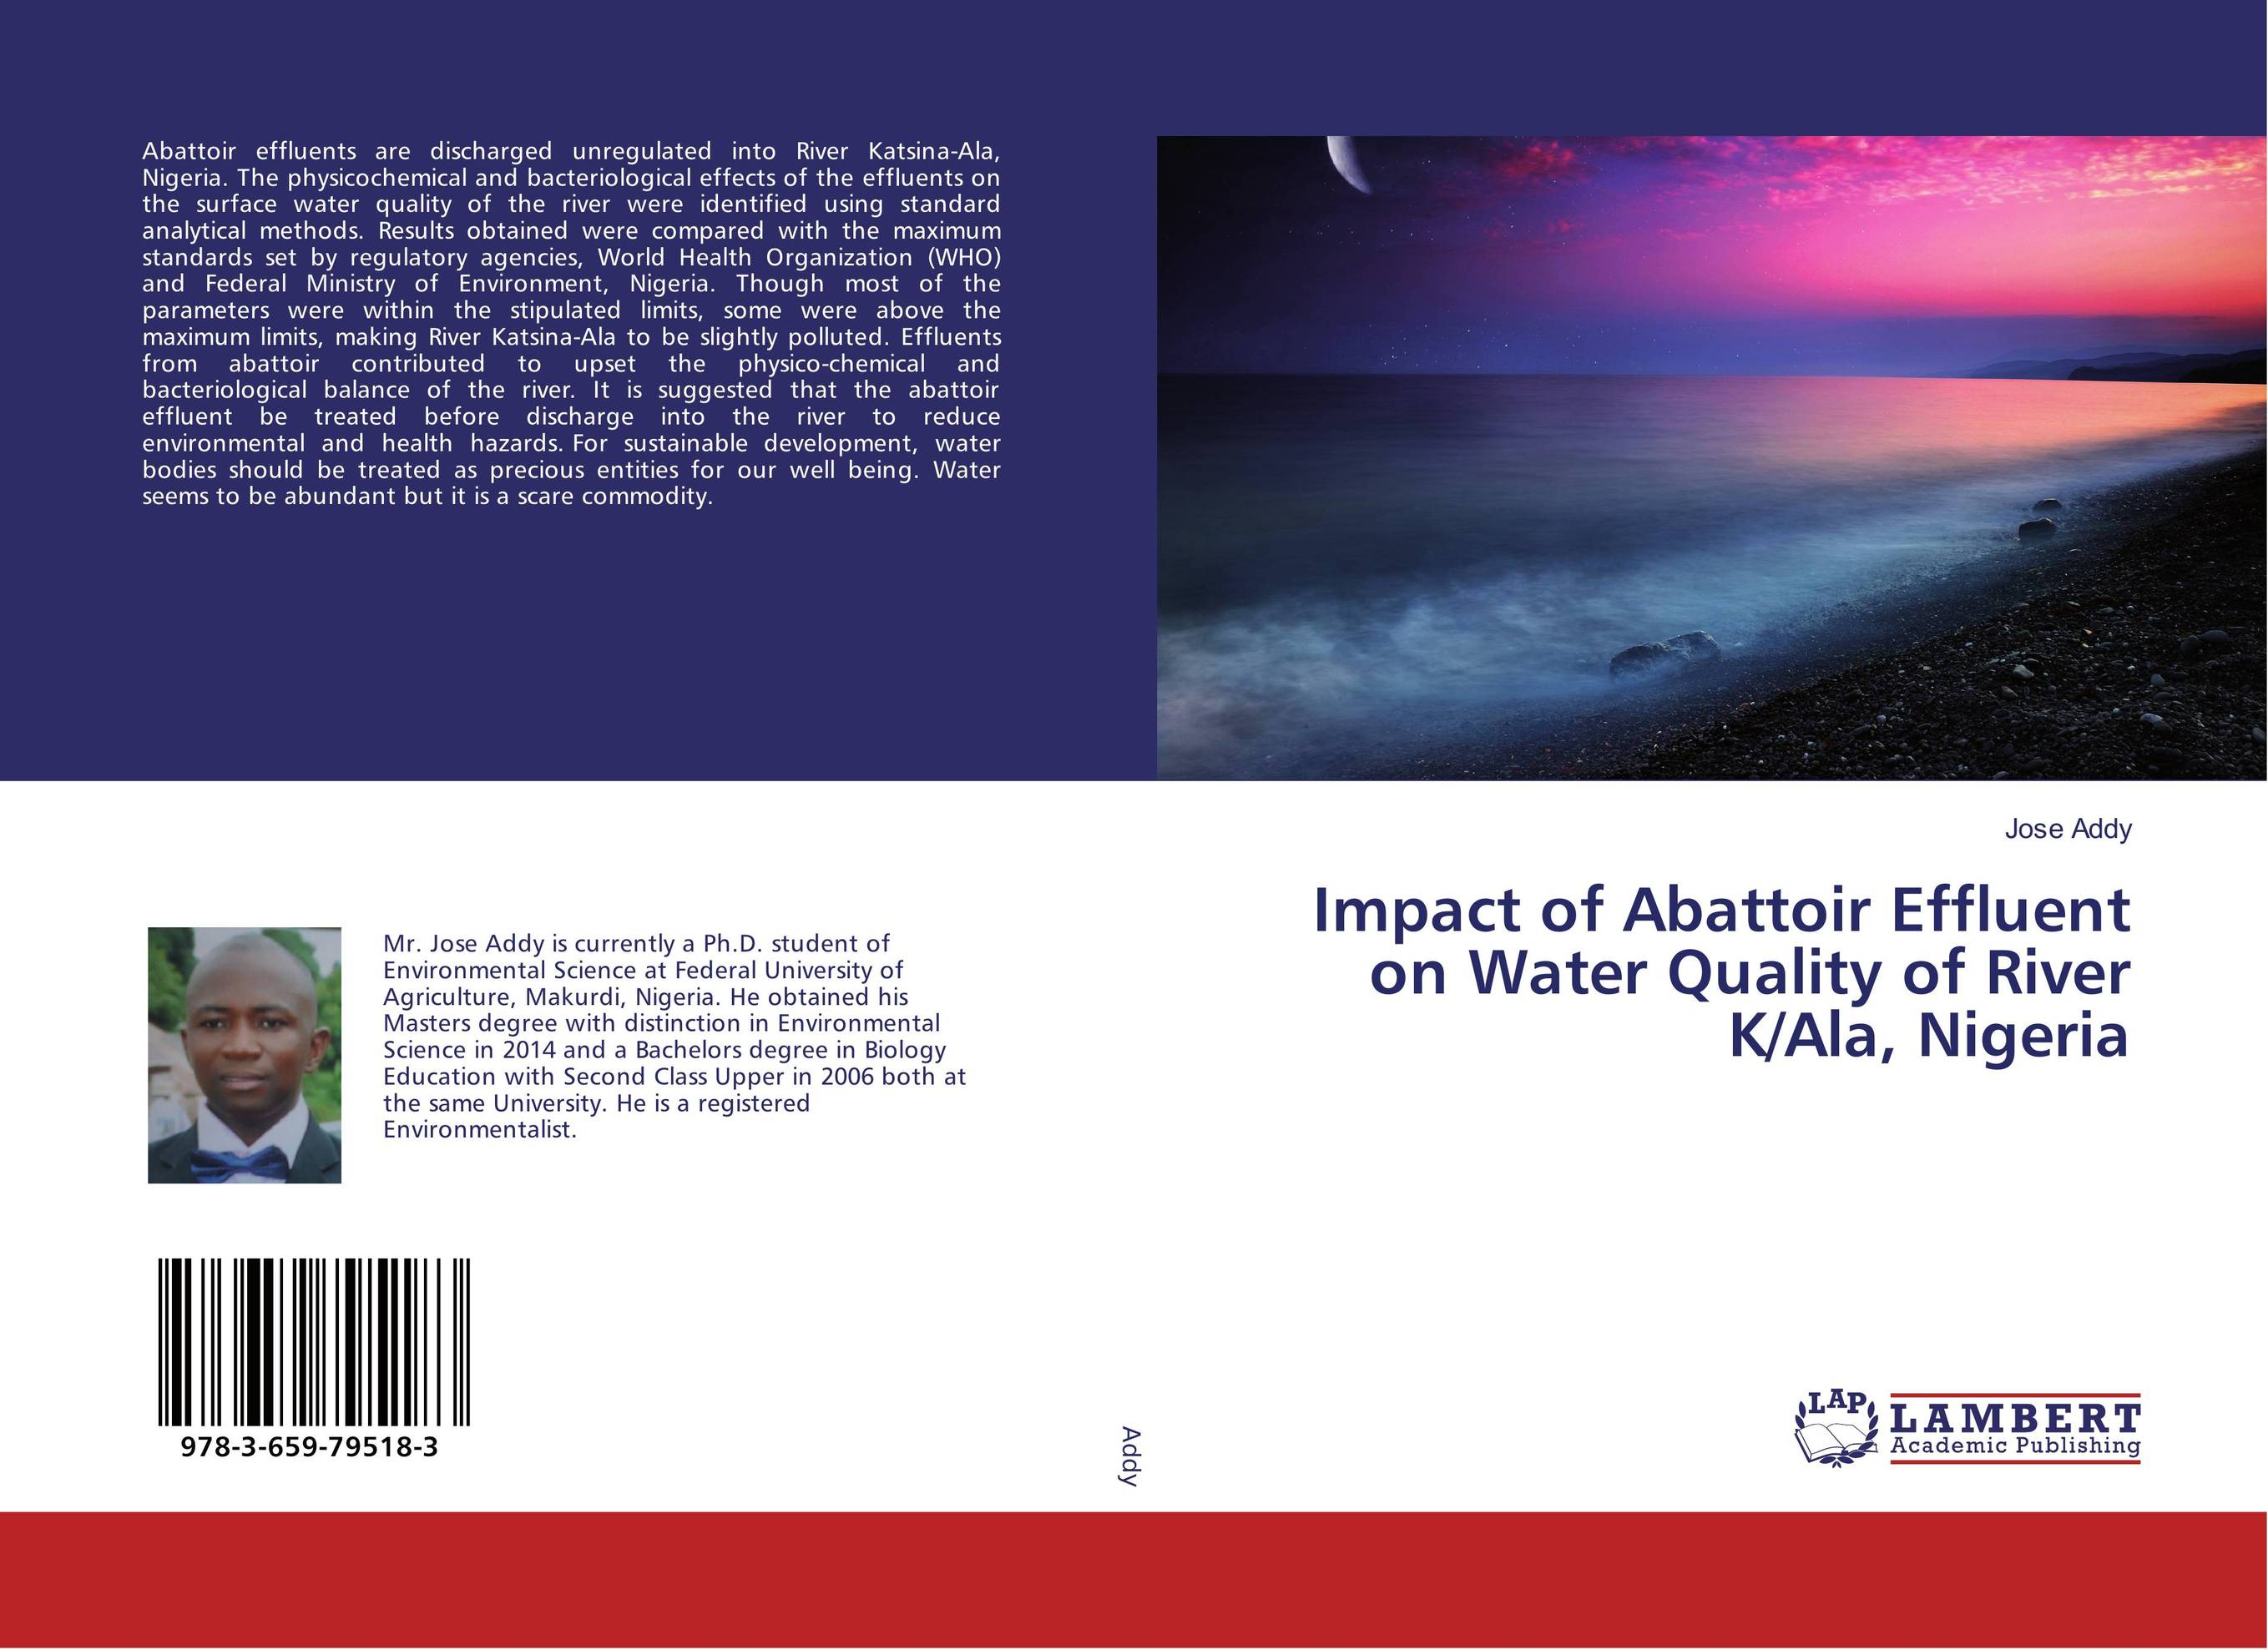 Impact of Abattoir Effluent on Water Quality of River K/Ala, Nigeria купить